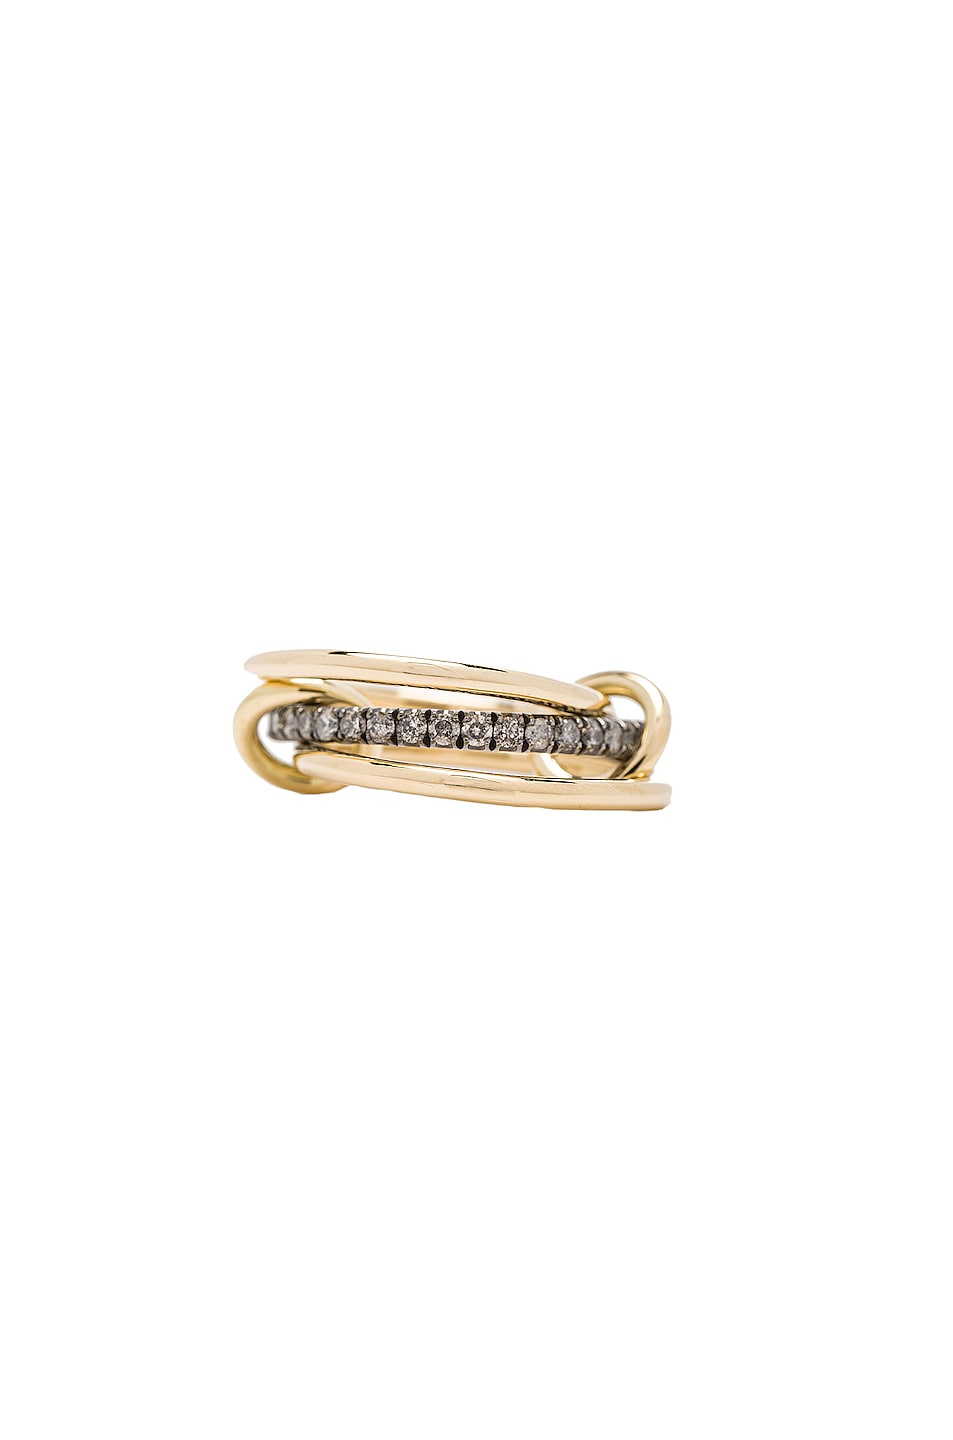 Image 1 of Spinelli Kilcollin Tigris Ring in 18K Yellow Gold